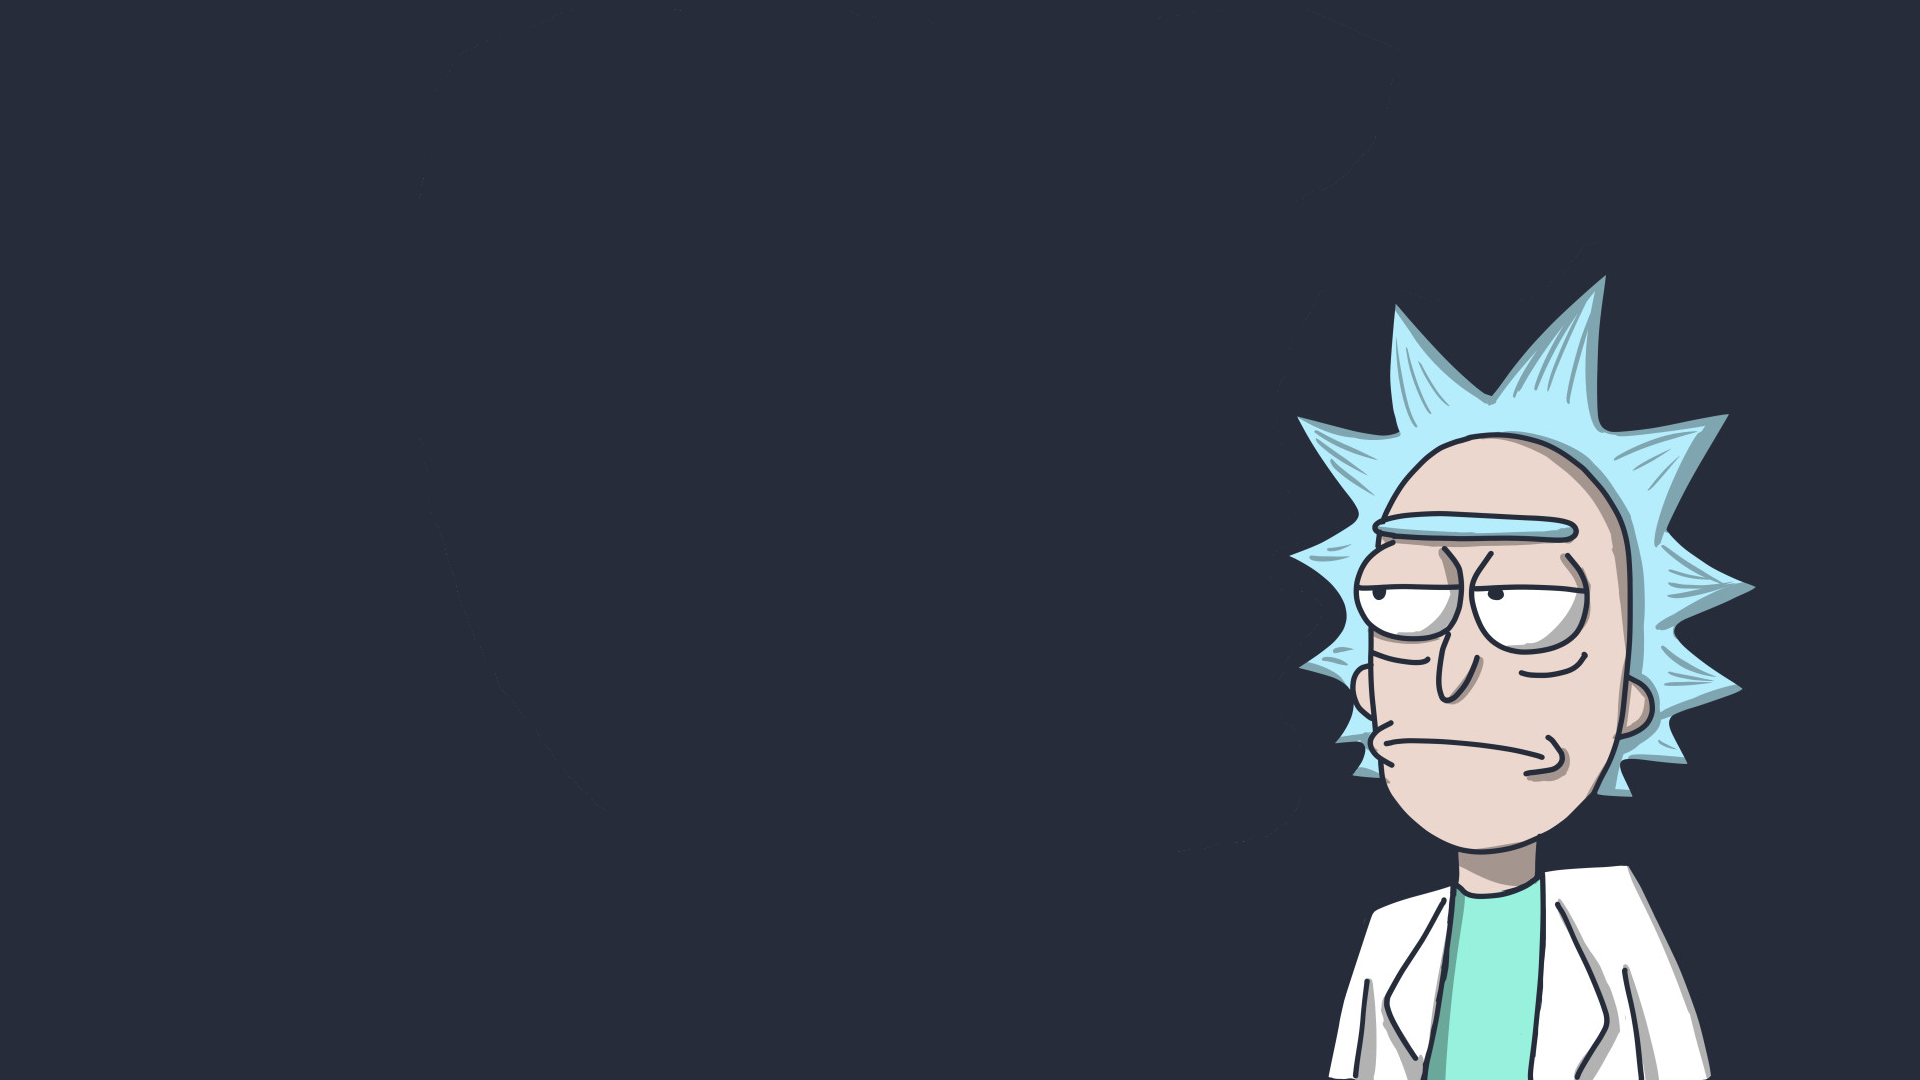 287 Rick And Morty Hd Wallpapers Background Images Wallpaper Abyss